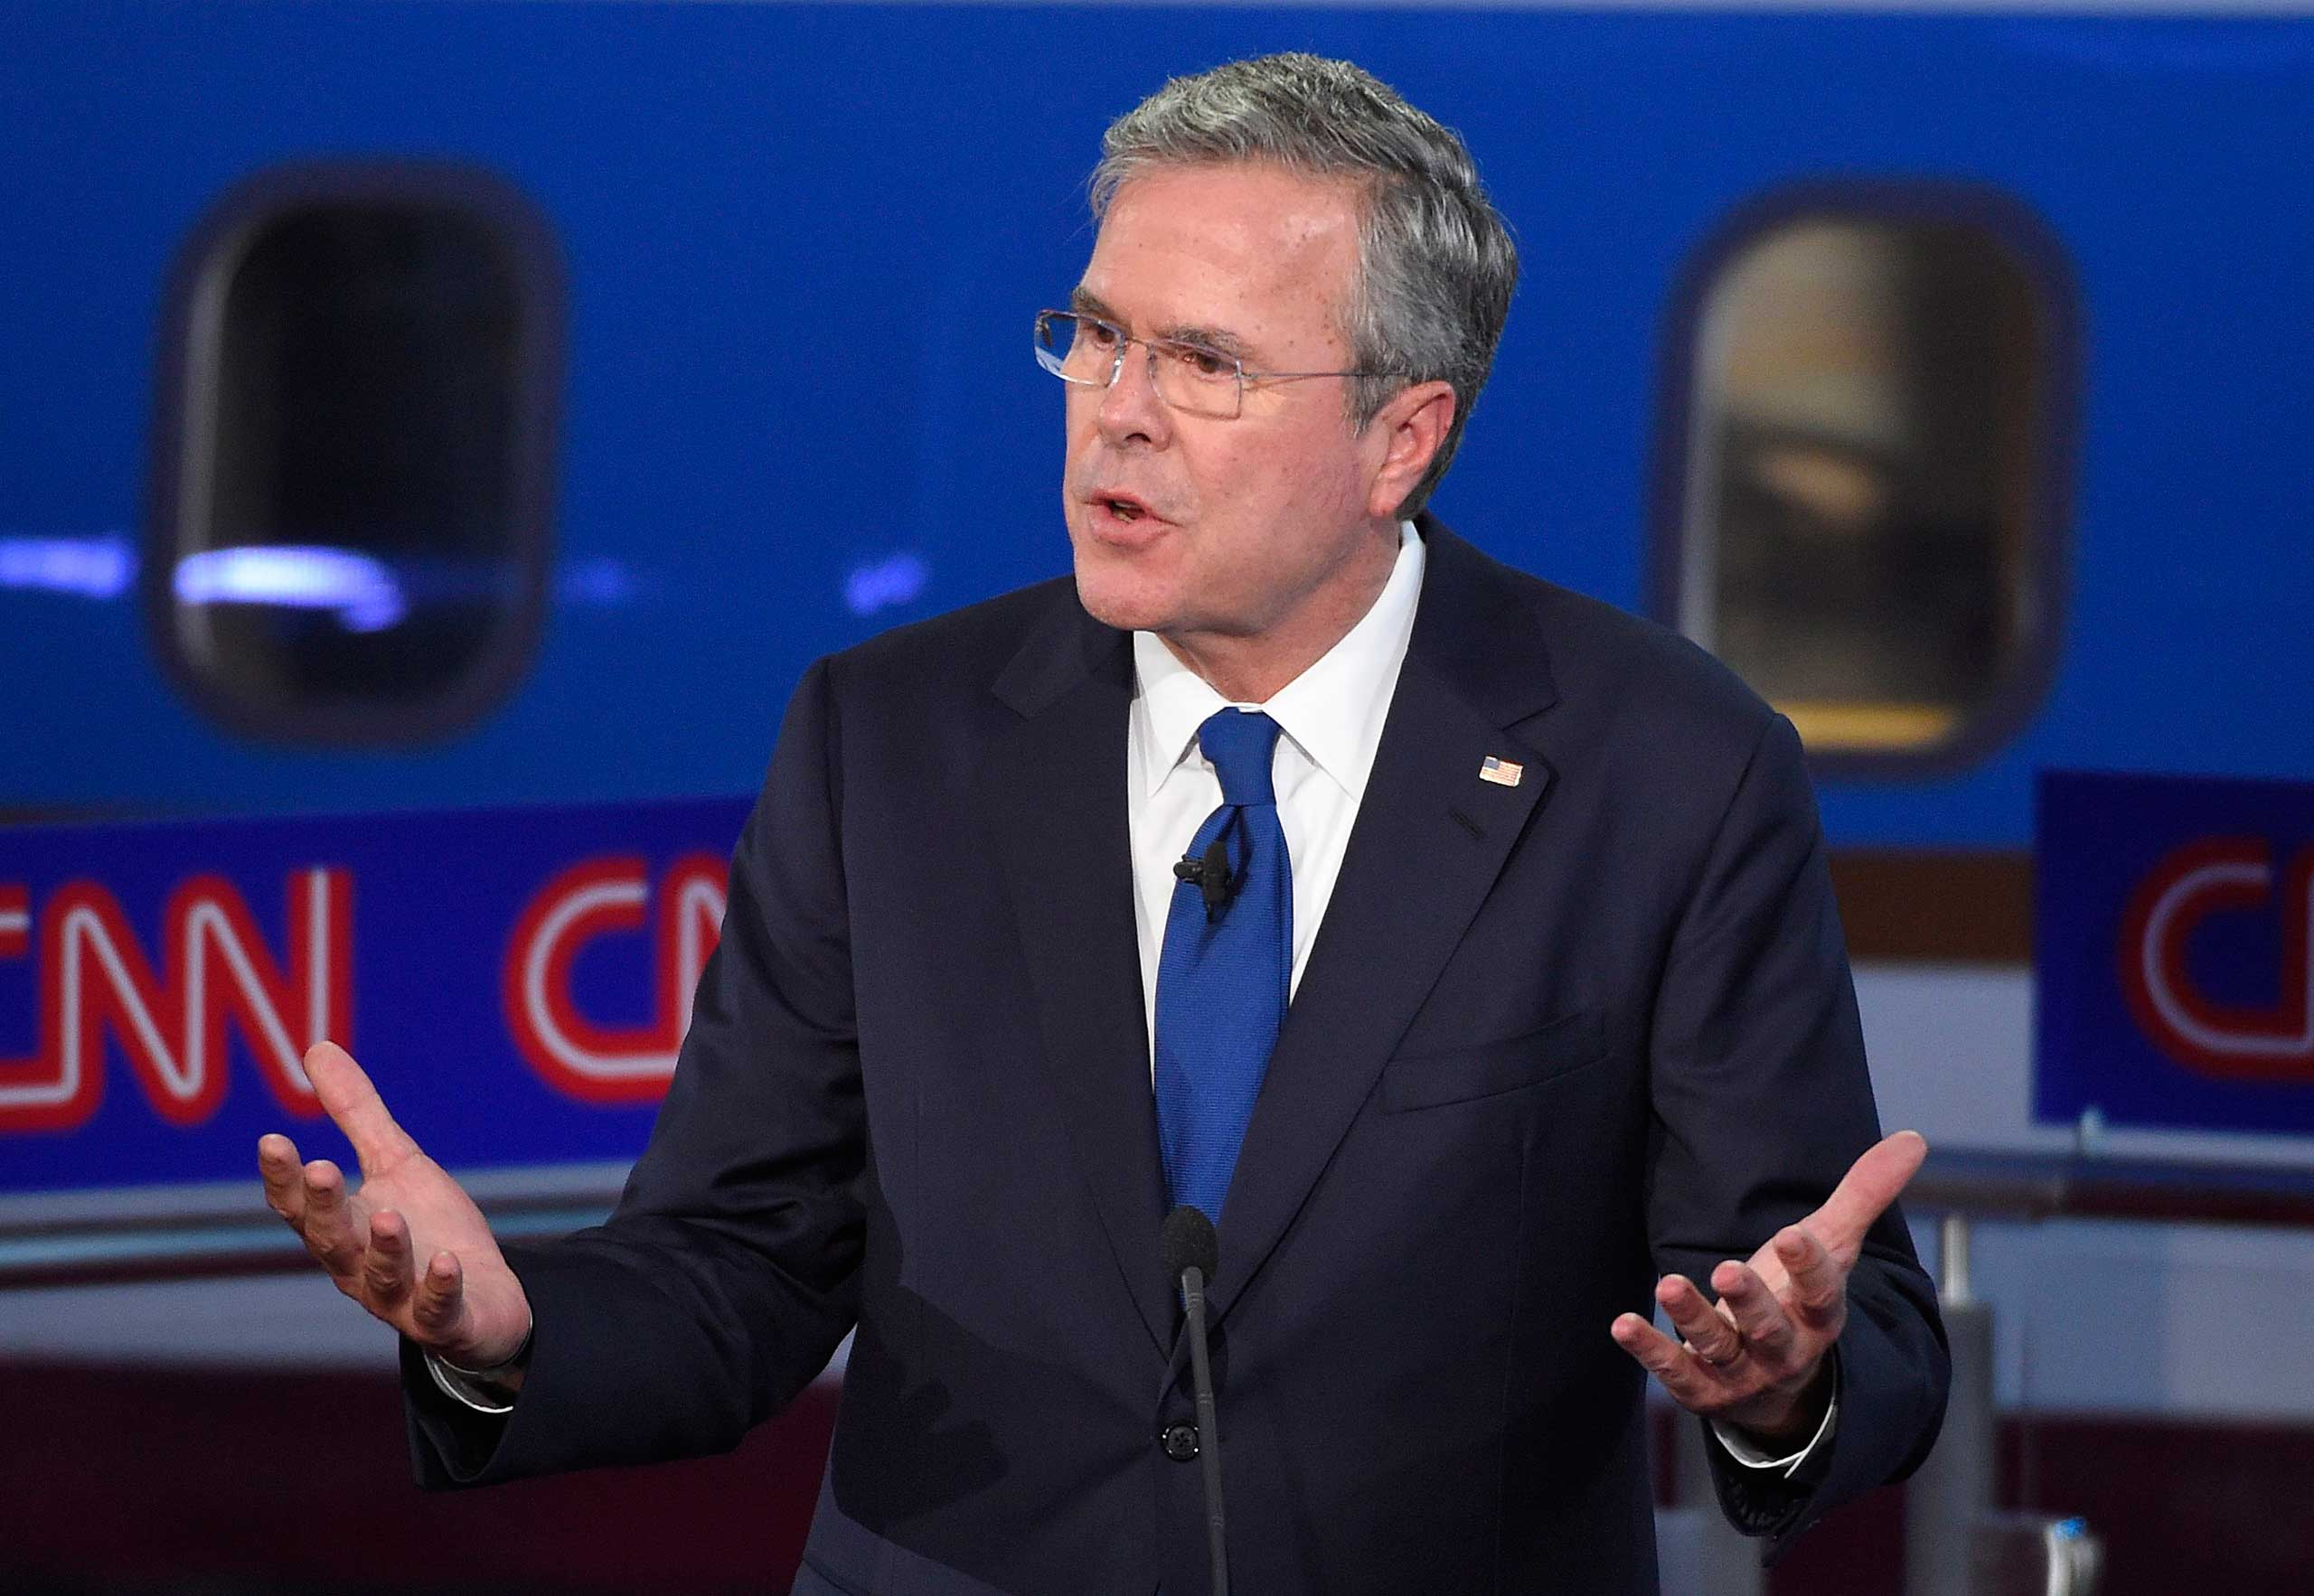 In this photo taken Wednesday, Sept. 16, 2015, Republican presidential candidate, former Florida Gov. Jeb Bush speaks during the CNN Republican presidential debate at the Ronald Reagan Presidential Library and Museum, in Simi Valley, Calif. Britain is abuzz with U.S. presidential candidate Jeb Bush's suggestion that Margaret Thatcher should grace the new $10 bill. (AP Photo/Mark J. Terrill)